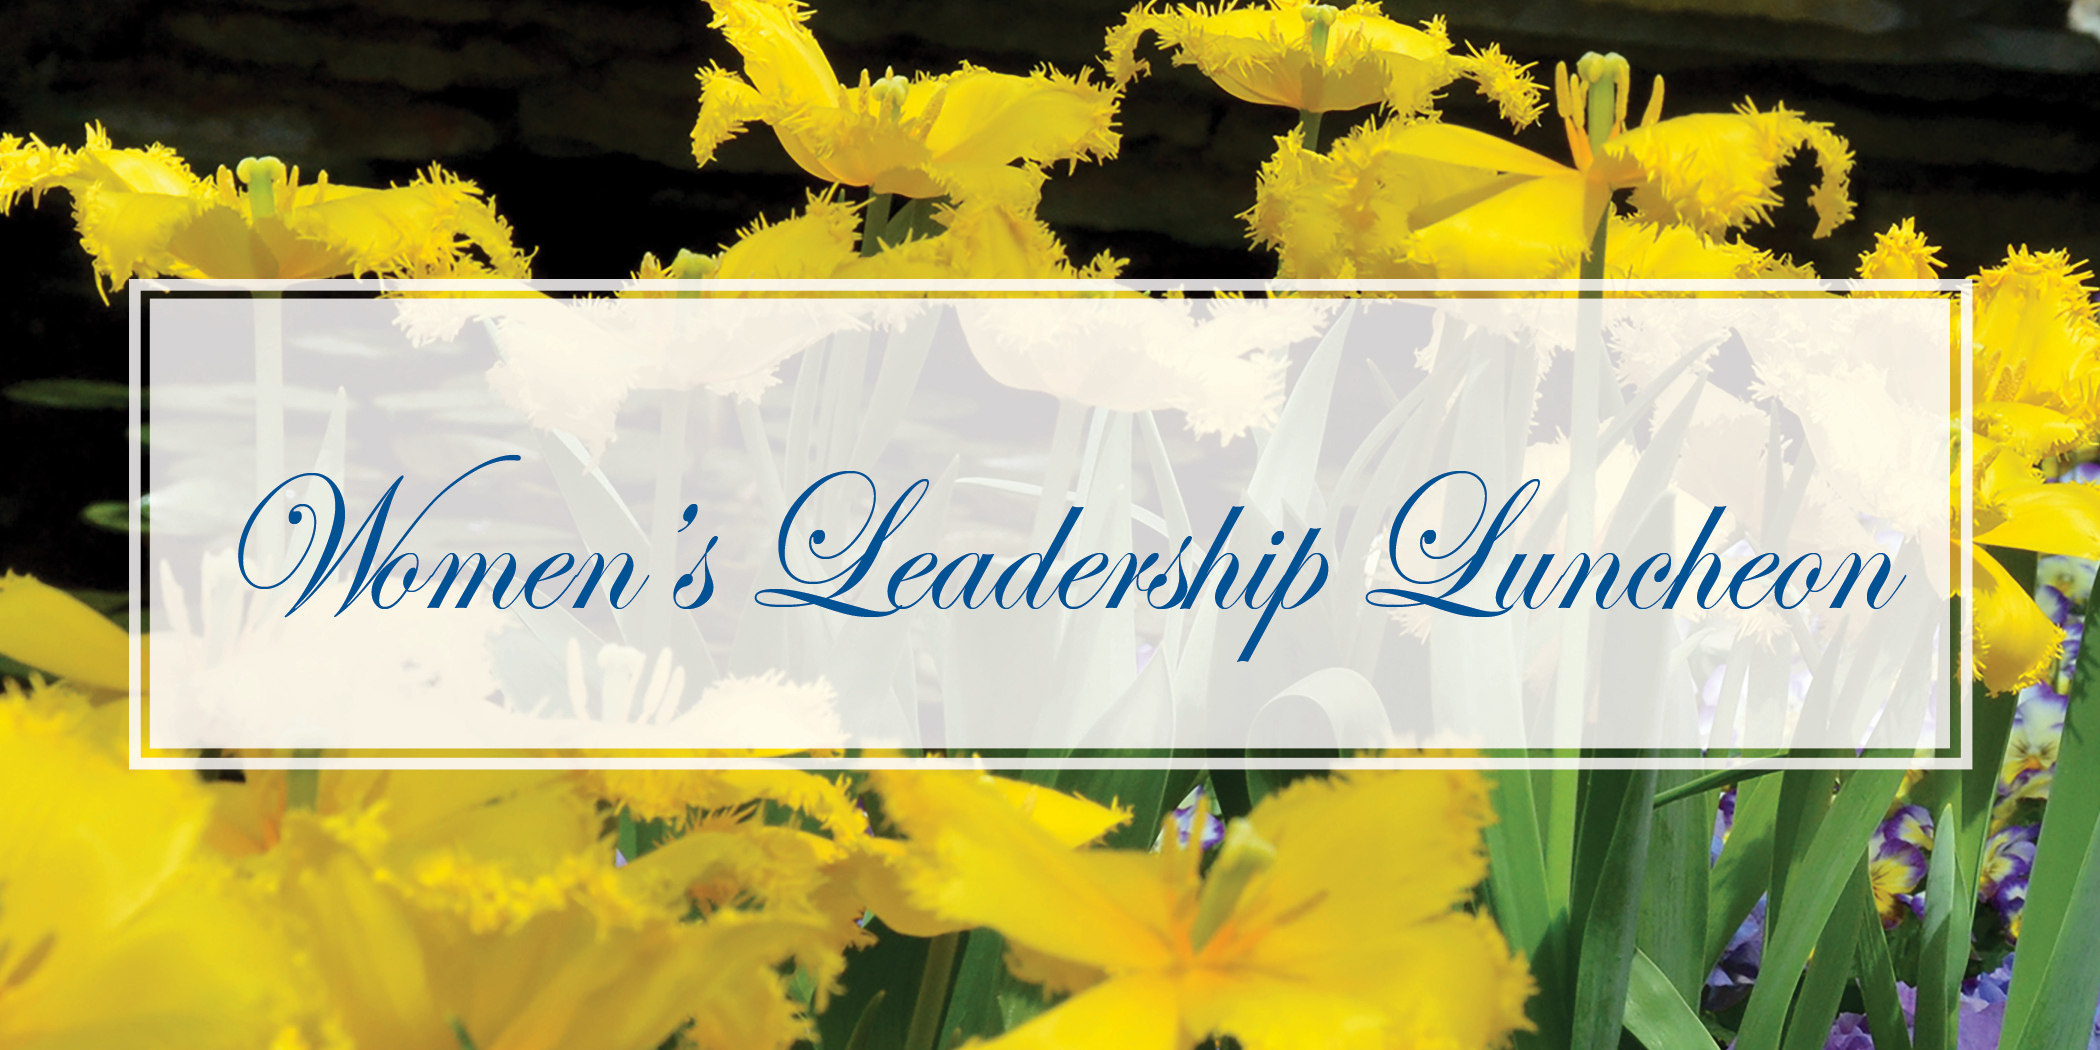 Women's Leadership Luncheon header for 2018